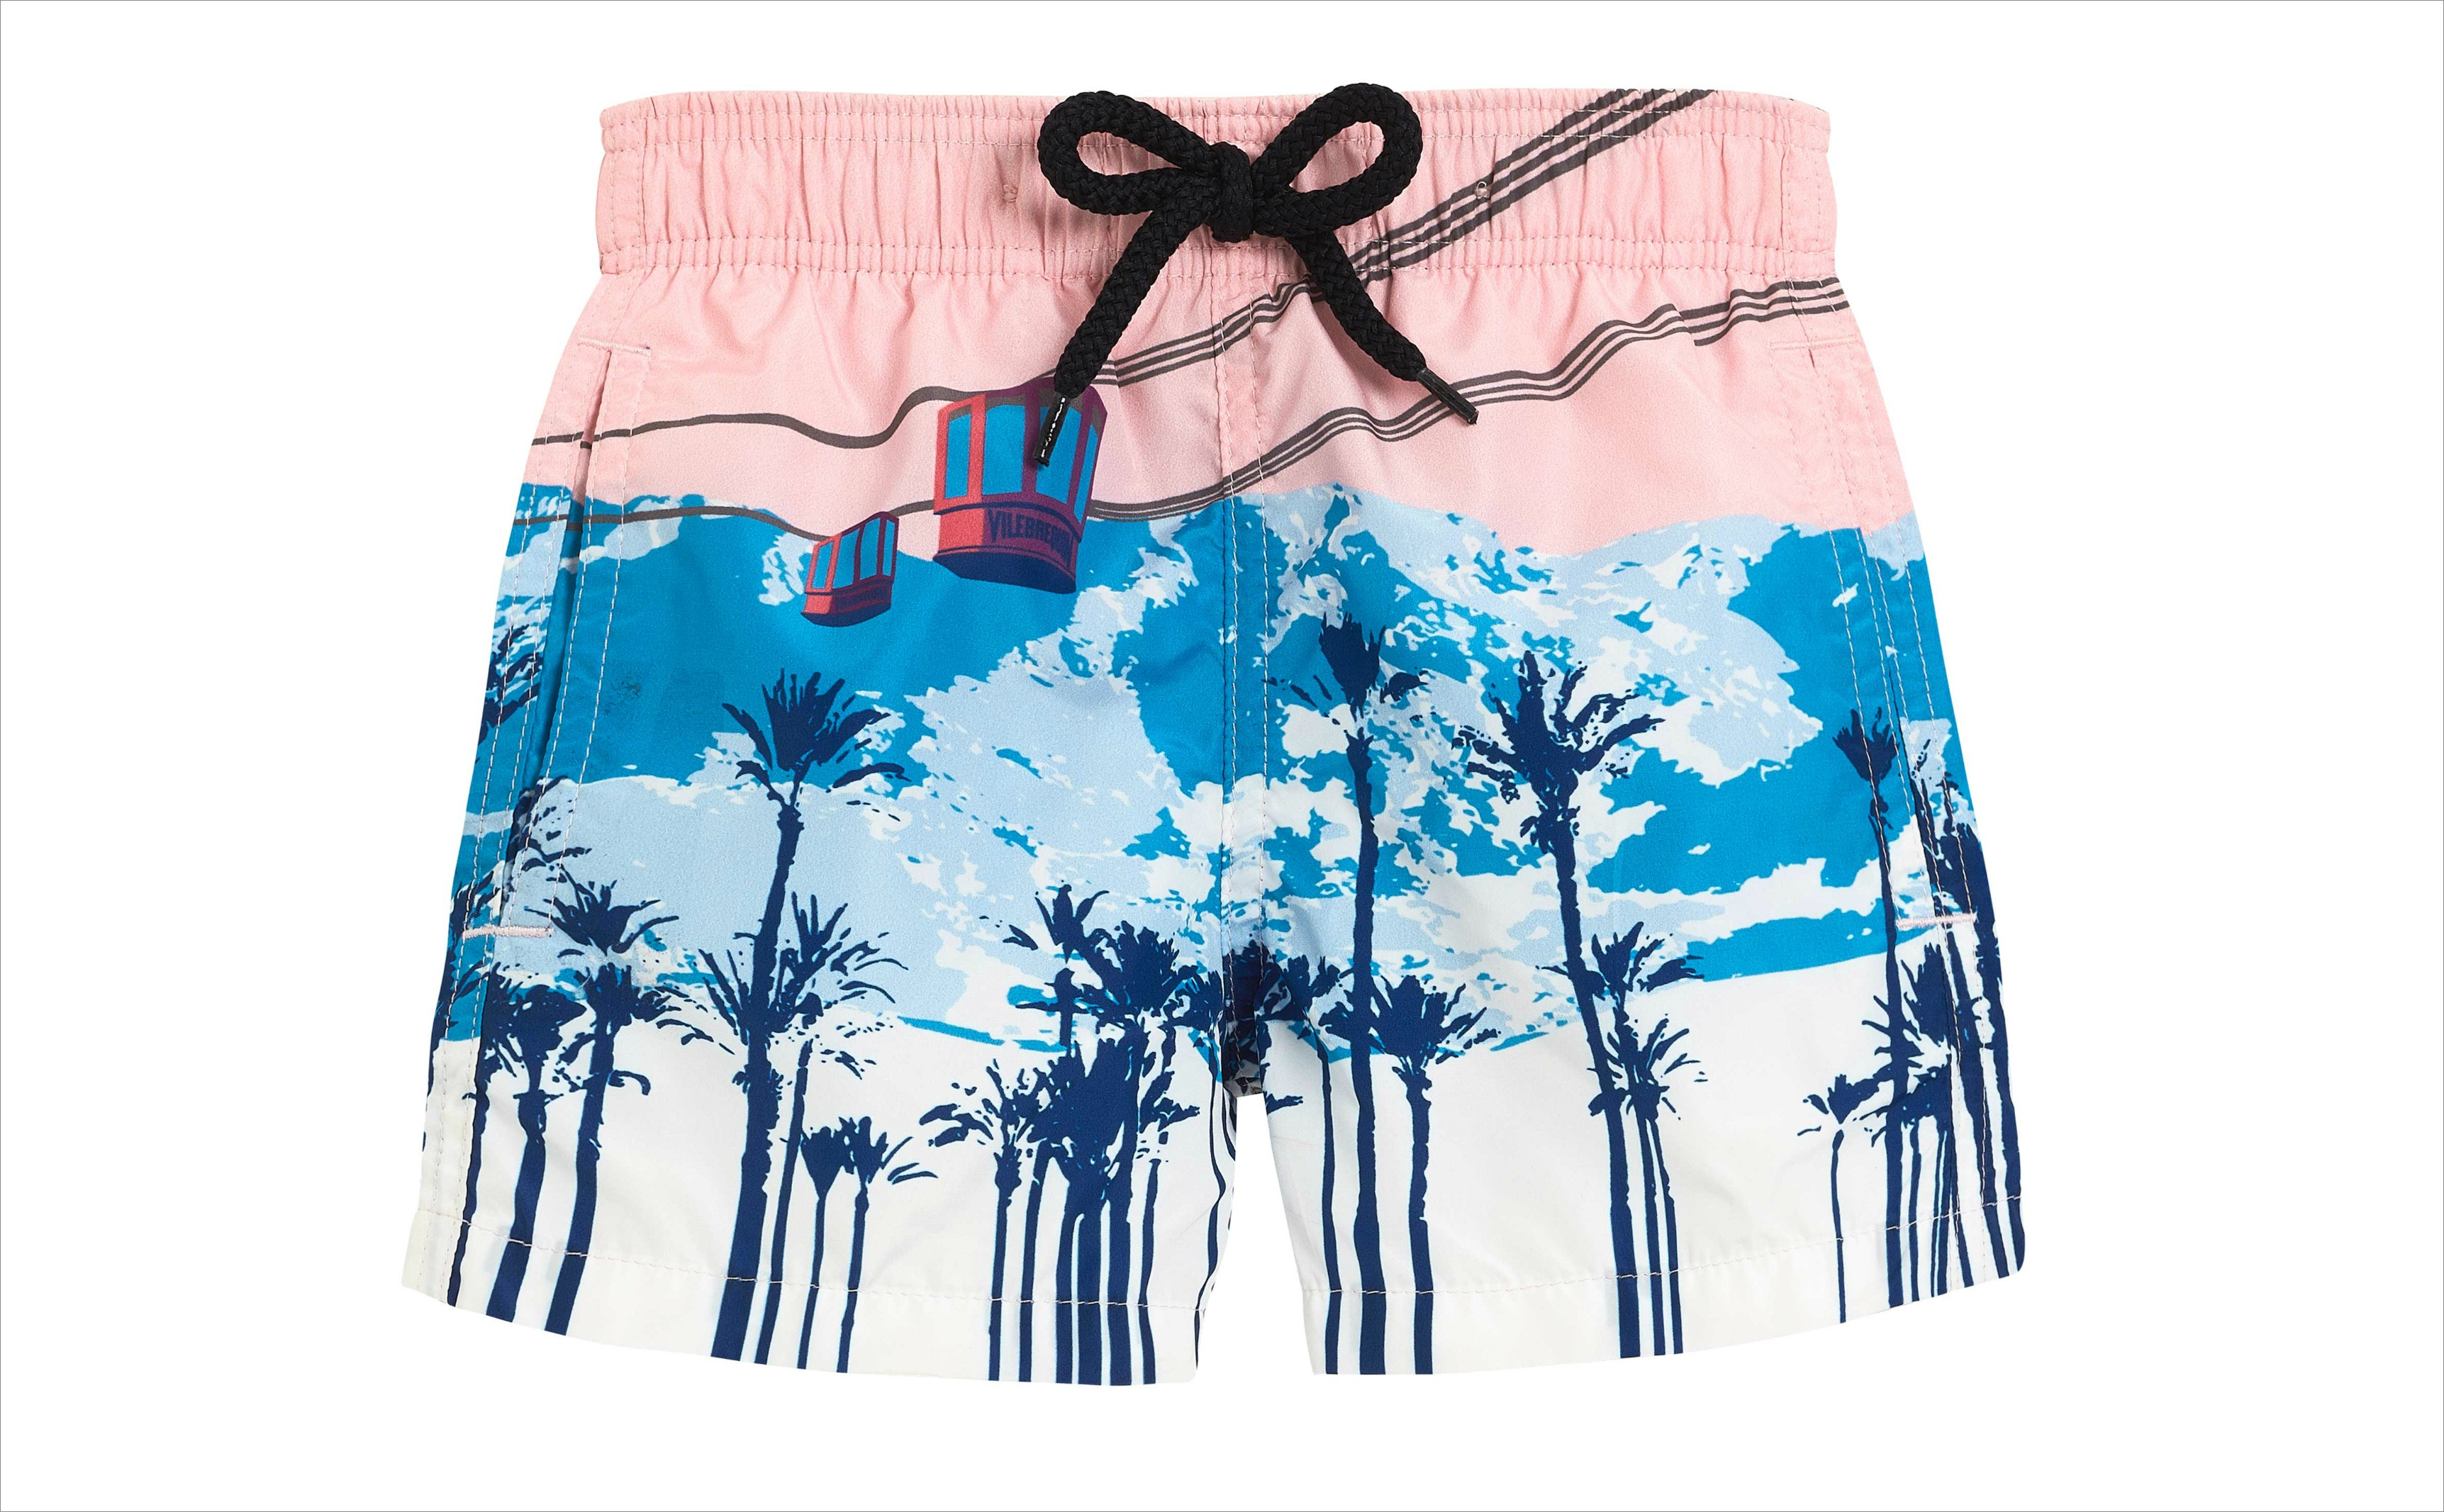 Mahina swim trunks by Vilebrequin holiday gift idea groom groomsman groomsmen